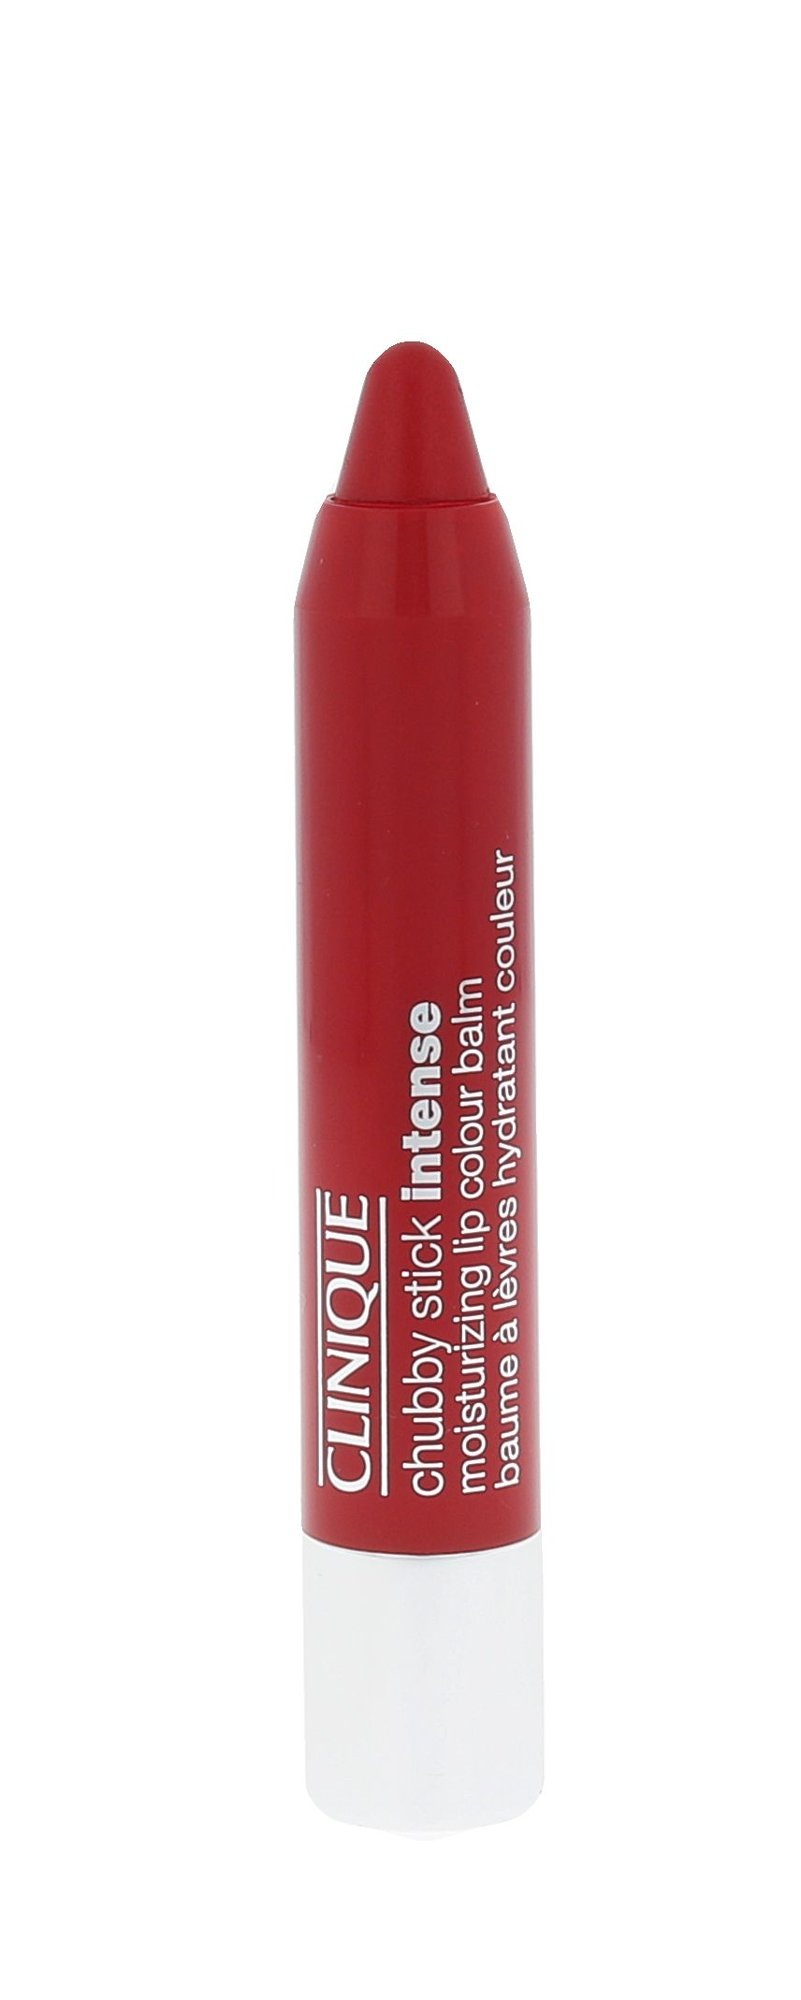 Lūpų balzamas Clinique Chubby Stick Intense Lip Balm